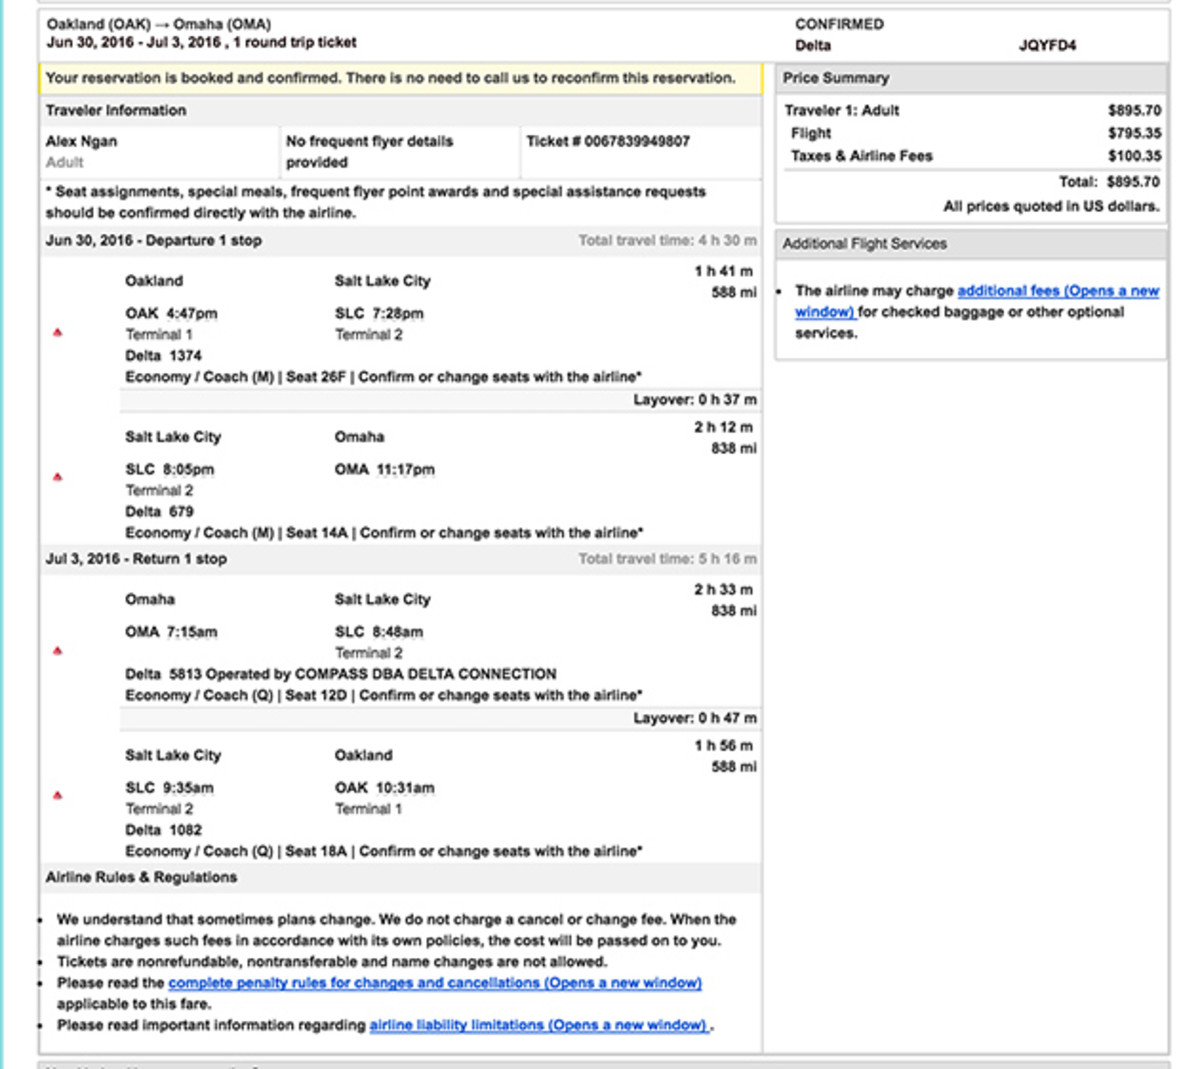 The flight itinerary for Ngan's ill-fated trip to Omaha.